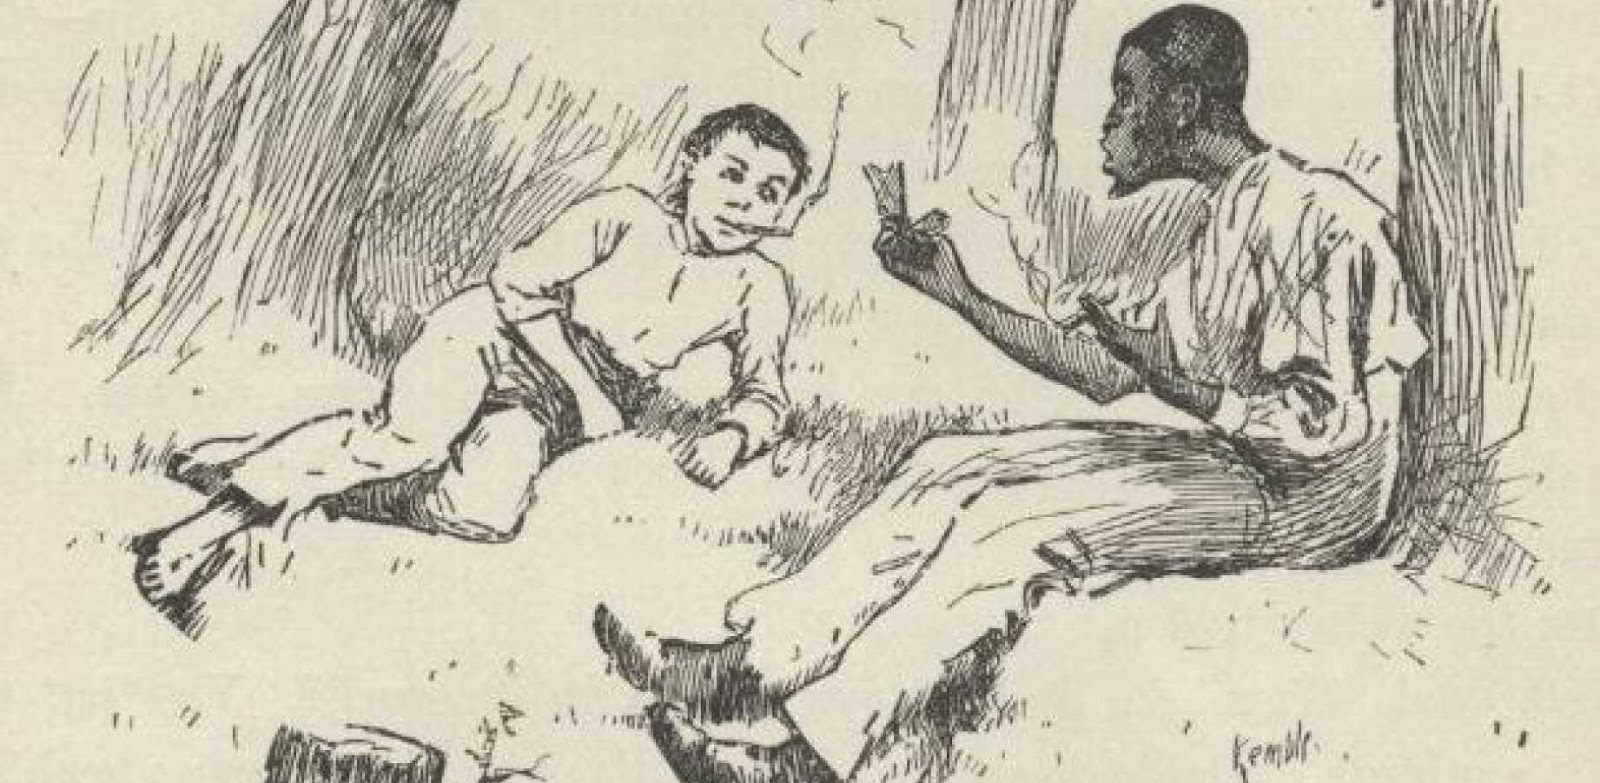 a focus on huck and jim in the novel huckleberry finn Huckleberry finn narrator and main character of the novel jim runaway slave who joins huck in his flight down the mississippi tom sawyer huck's civilized best friend who enjoys extravagant stories and schemes.